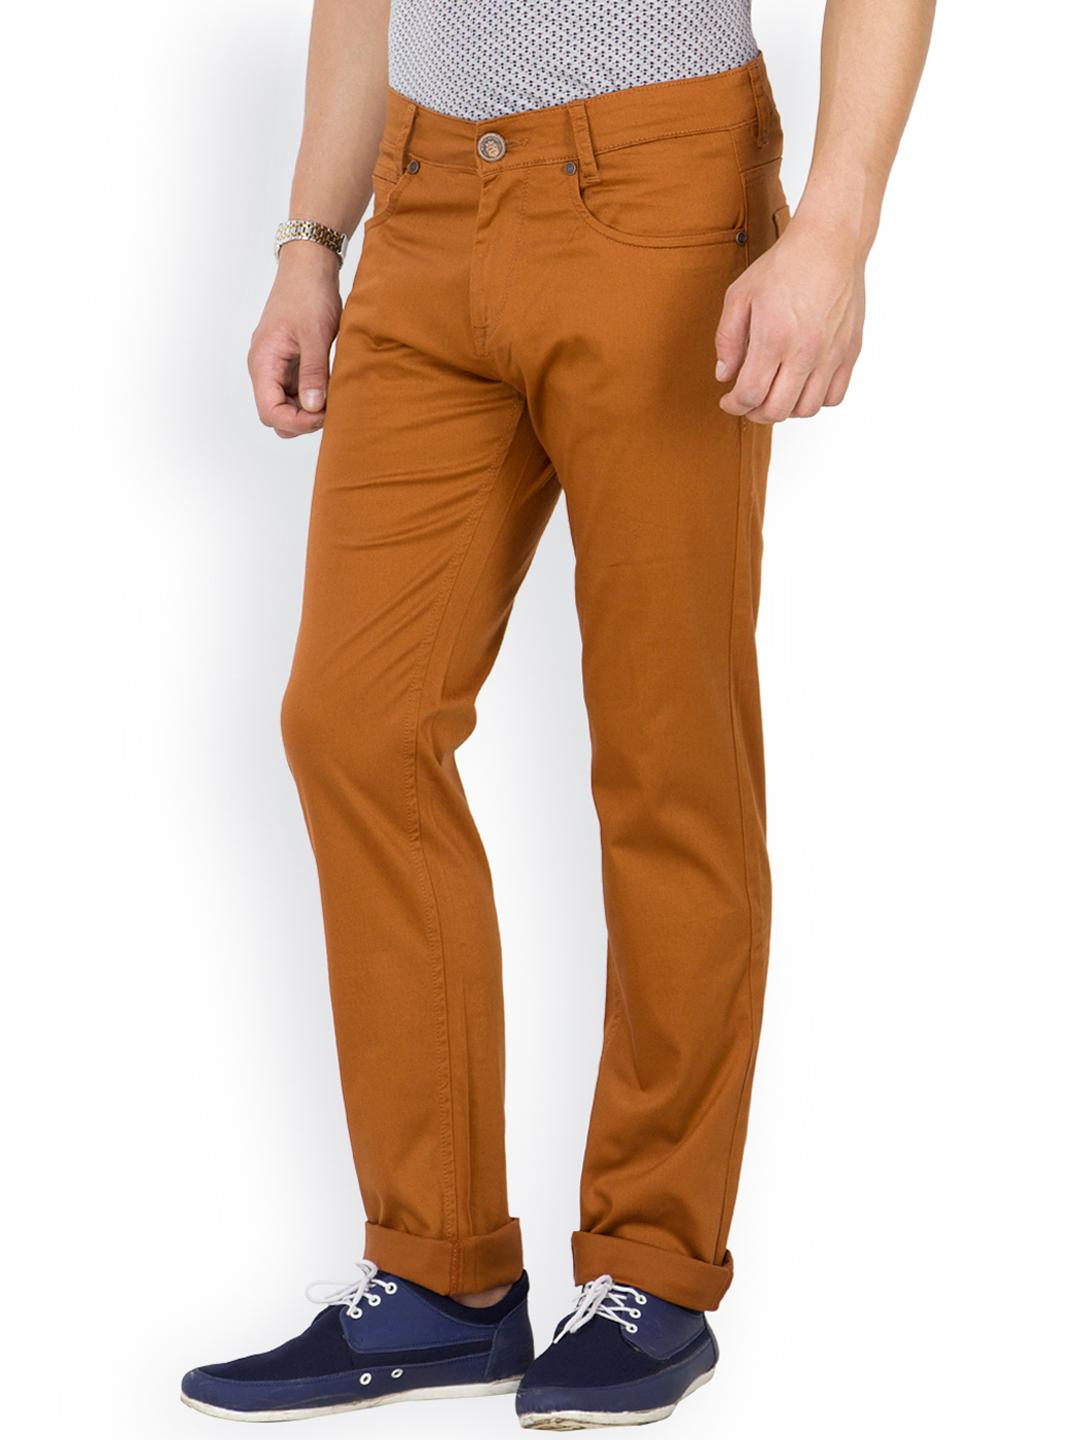 Myntra Mufti Men Brown Tapered Jeans 800921 | Buy Myntra Mufti Jeans at best price online. All ...